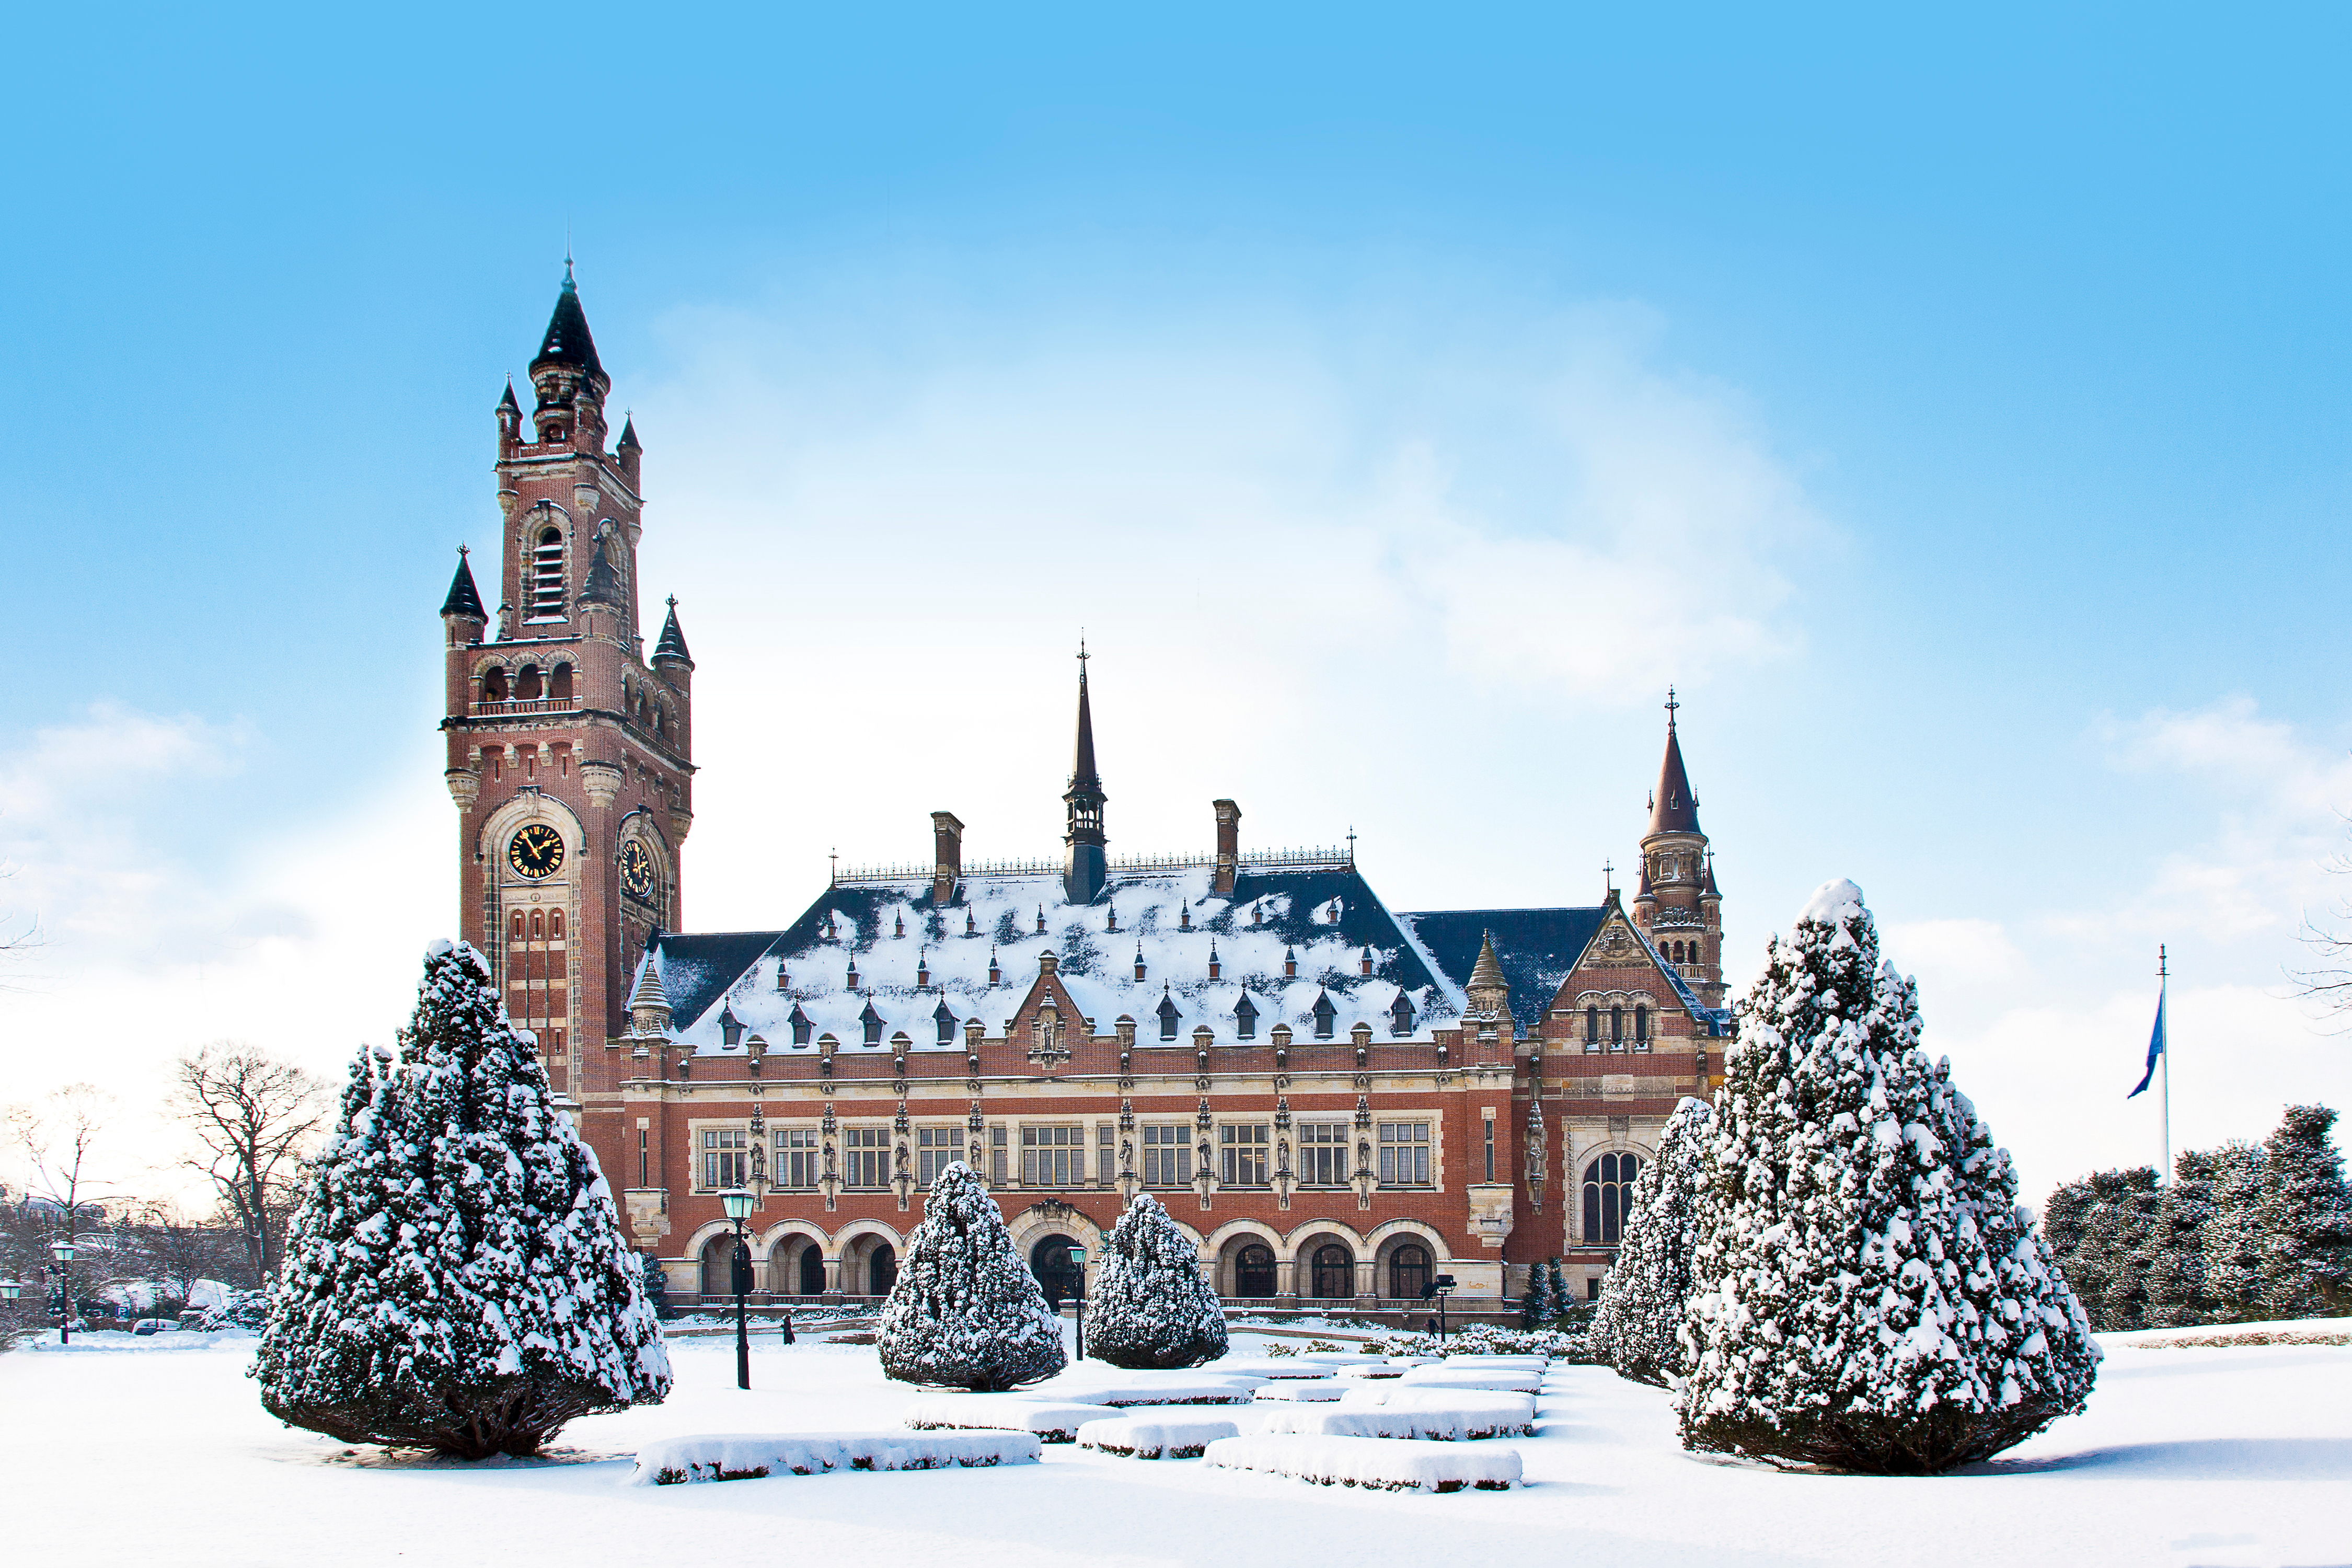 The Hague Palace during winter